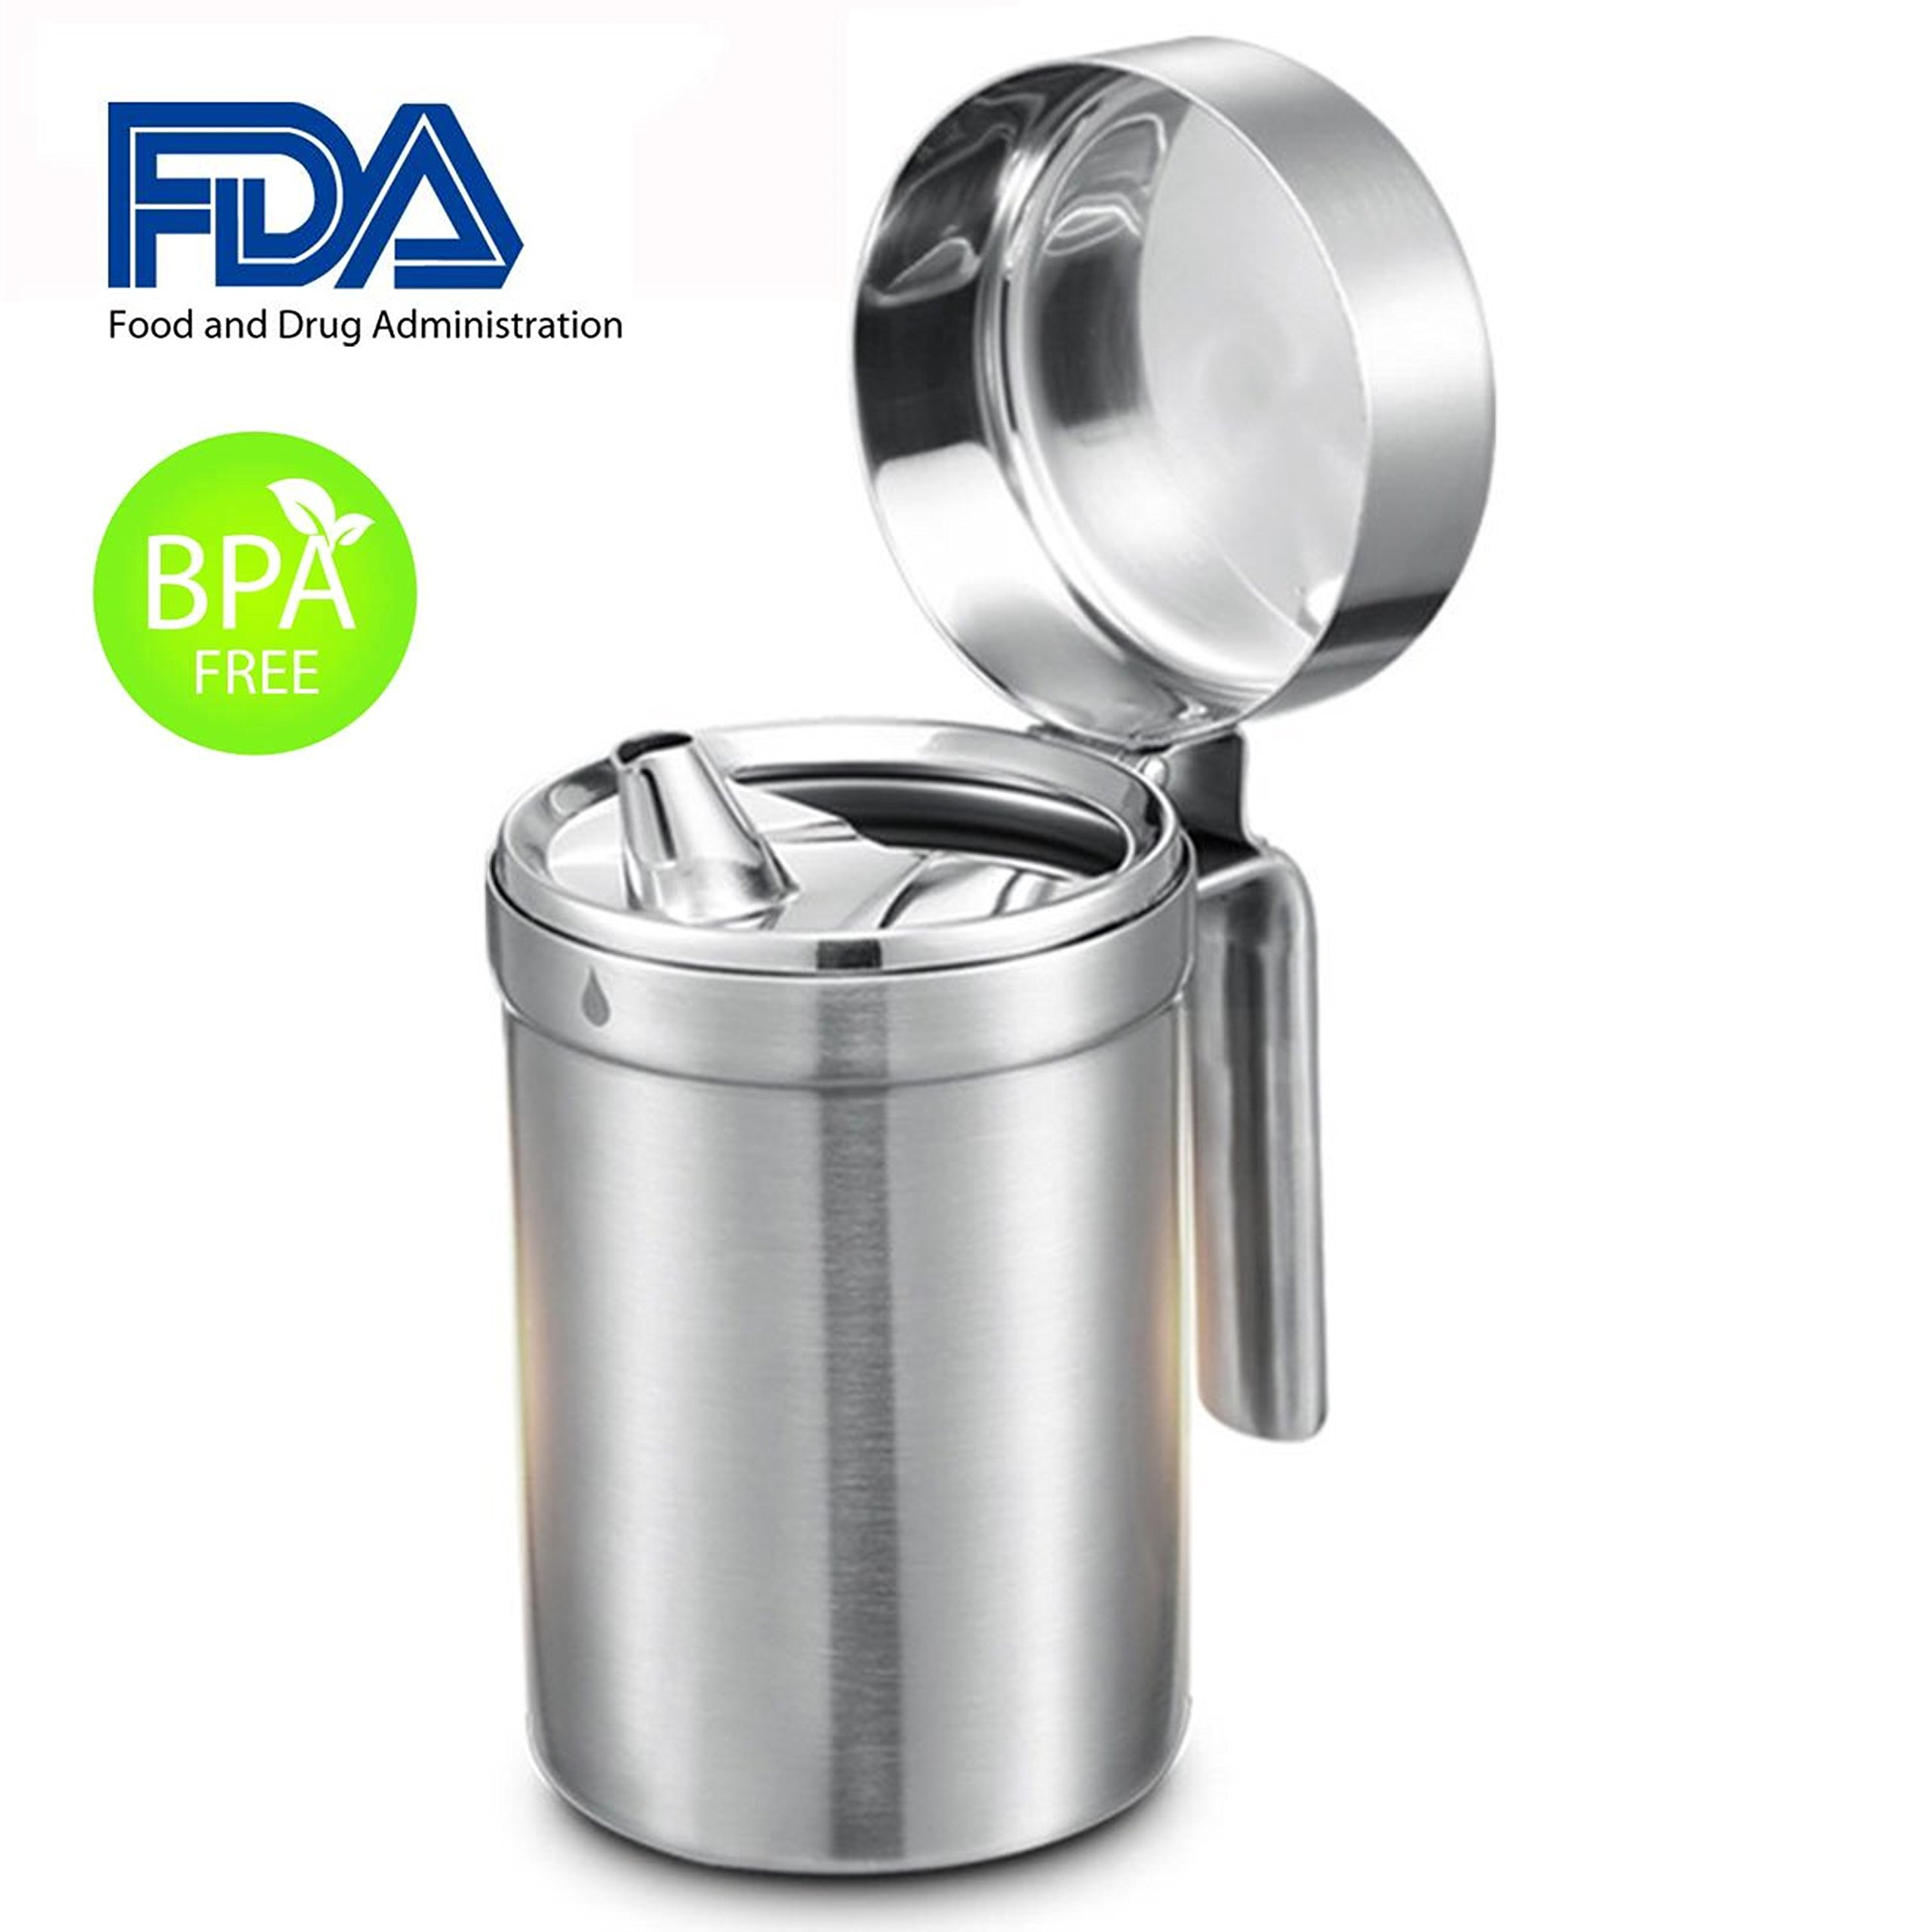 Oil Dispenser,Shrimp Stainless Steel Olive Oil Dispenser Oil Can Leak Proof Oil Storage with Lid Edible Oil container Salad Dressing for Kitchen Cooking/Restaurant /BBQ (18oz)